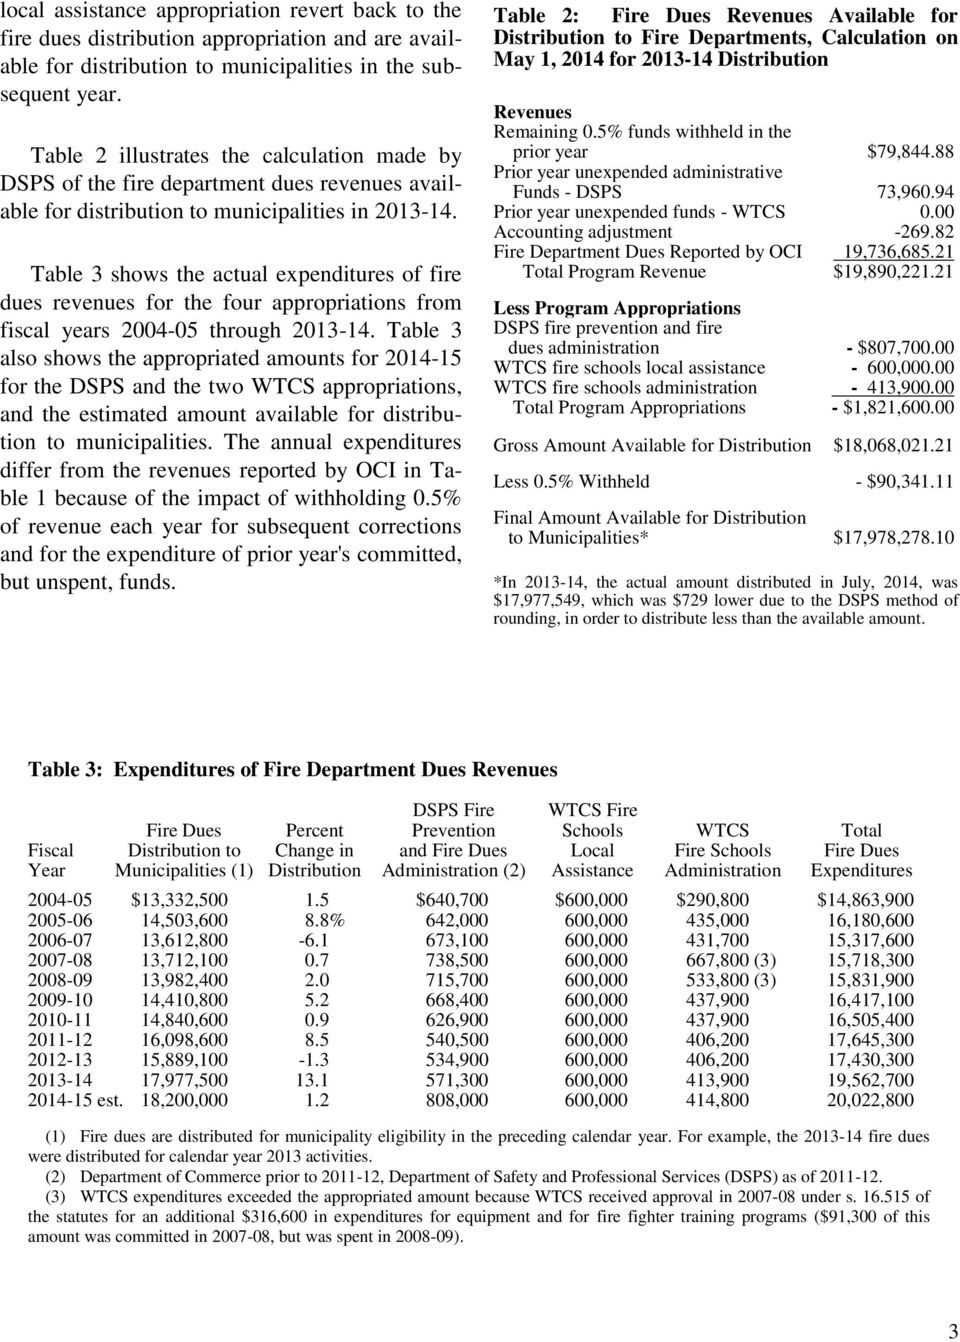 Table 3 shows the actual expenditures of fire dues revenues for the four appropriations from fiscal years 2004-05 through 2013-14.